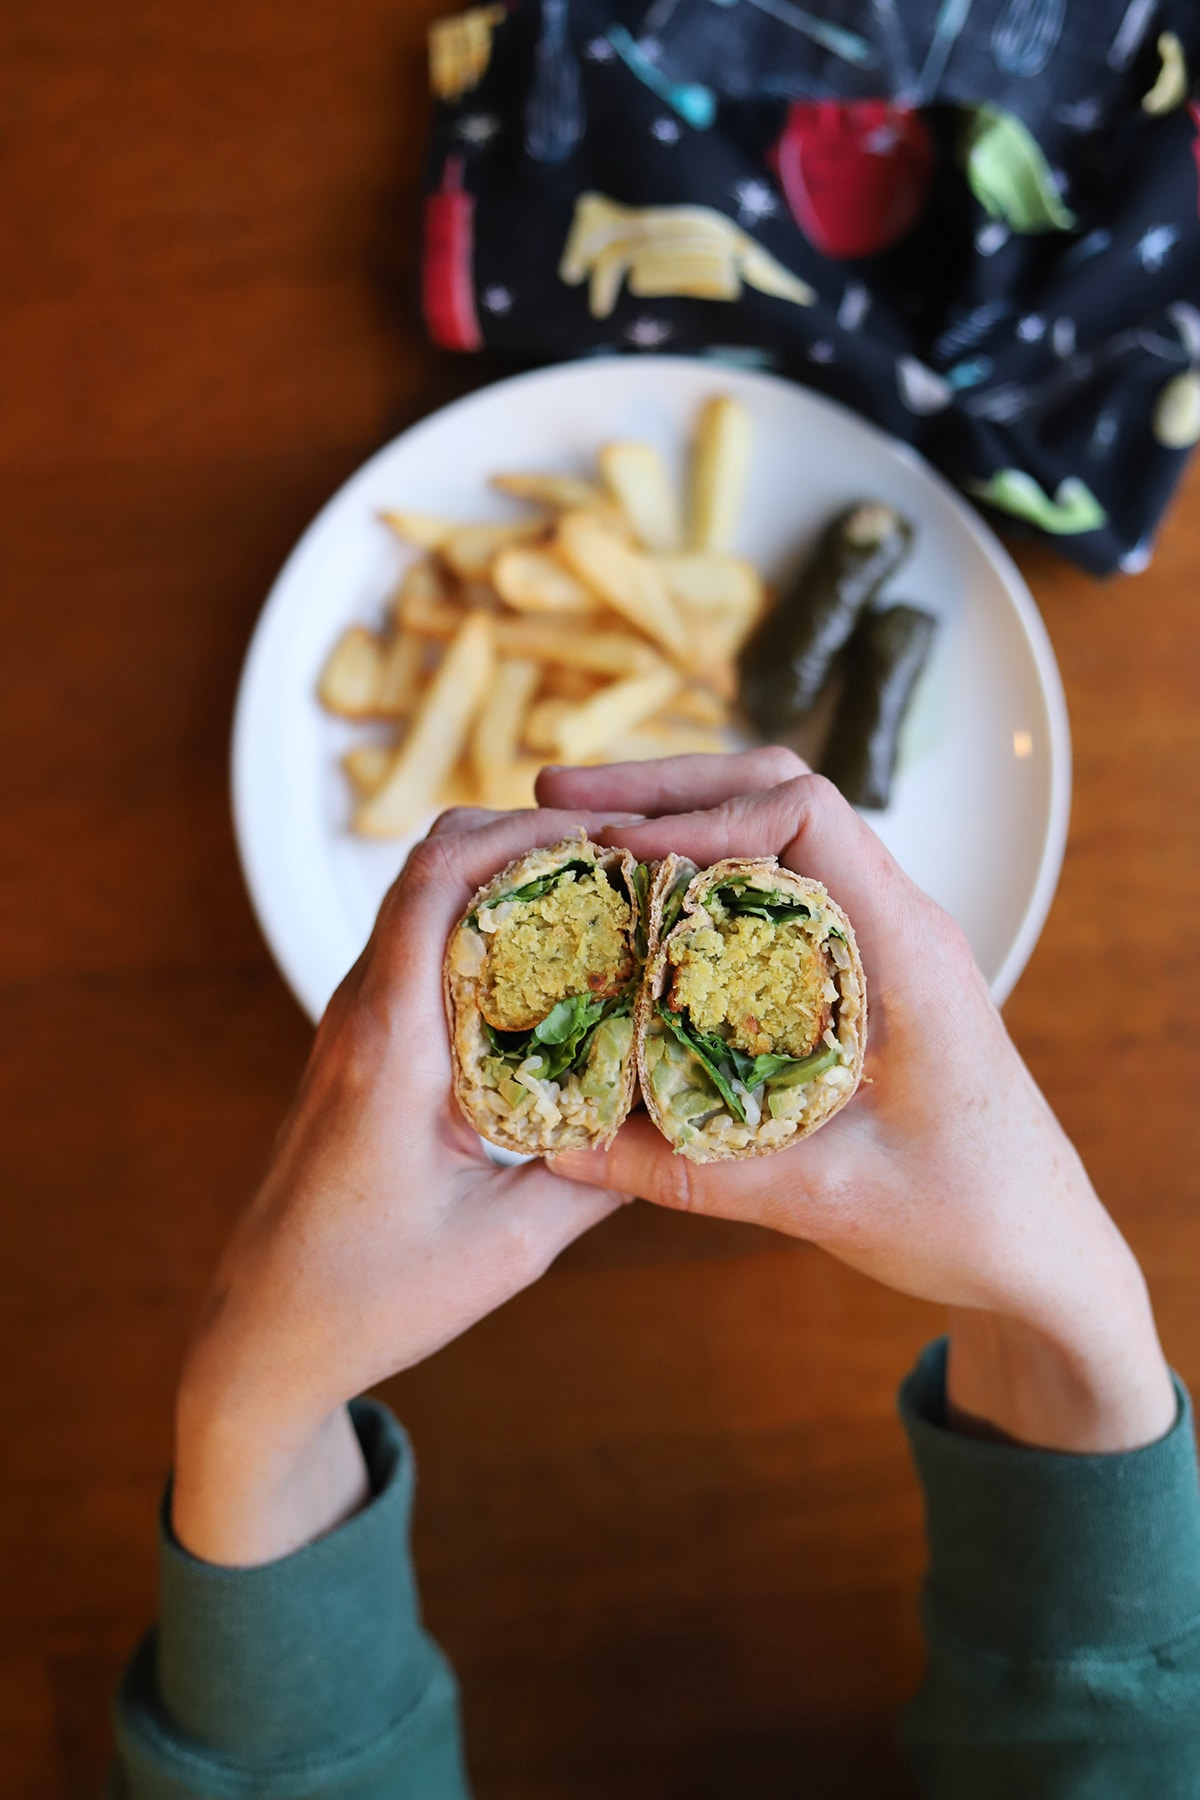 Hand holding falafel wrap with spinach, rice, and hummus.